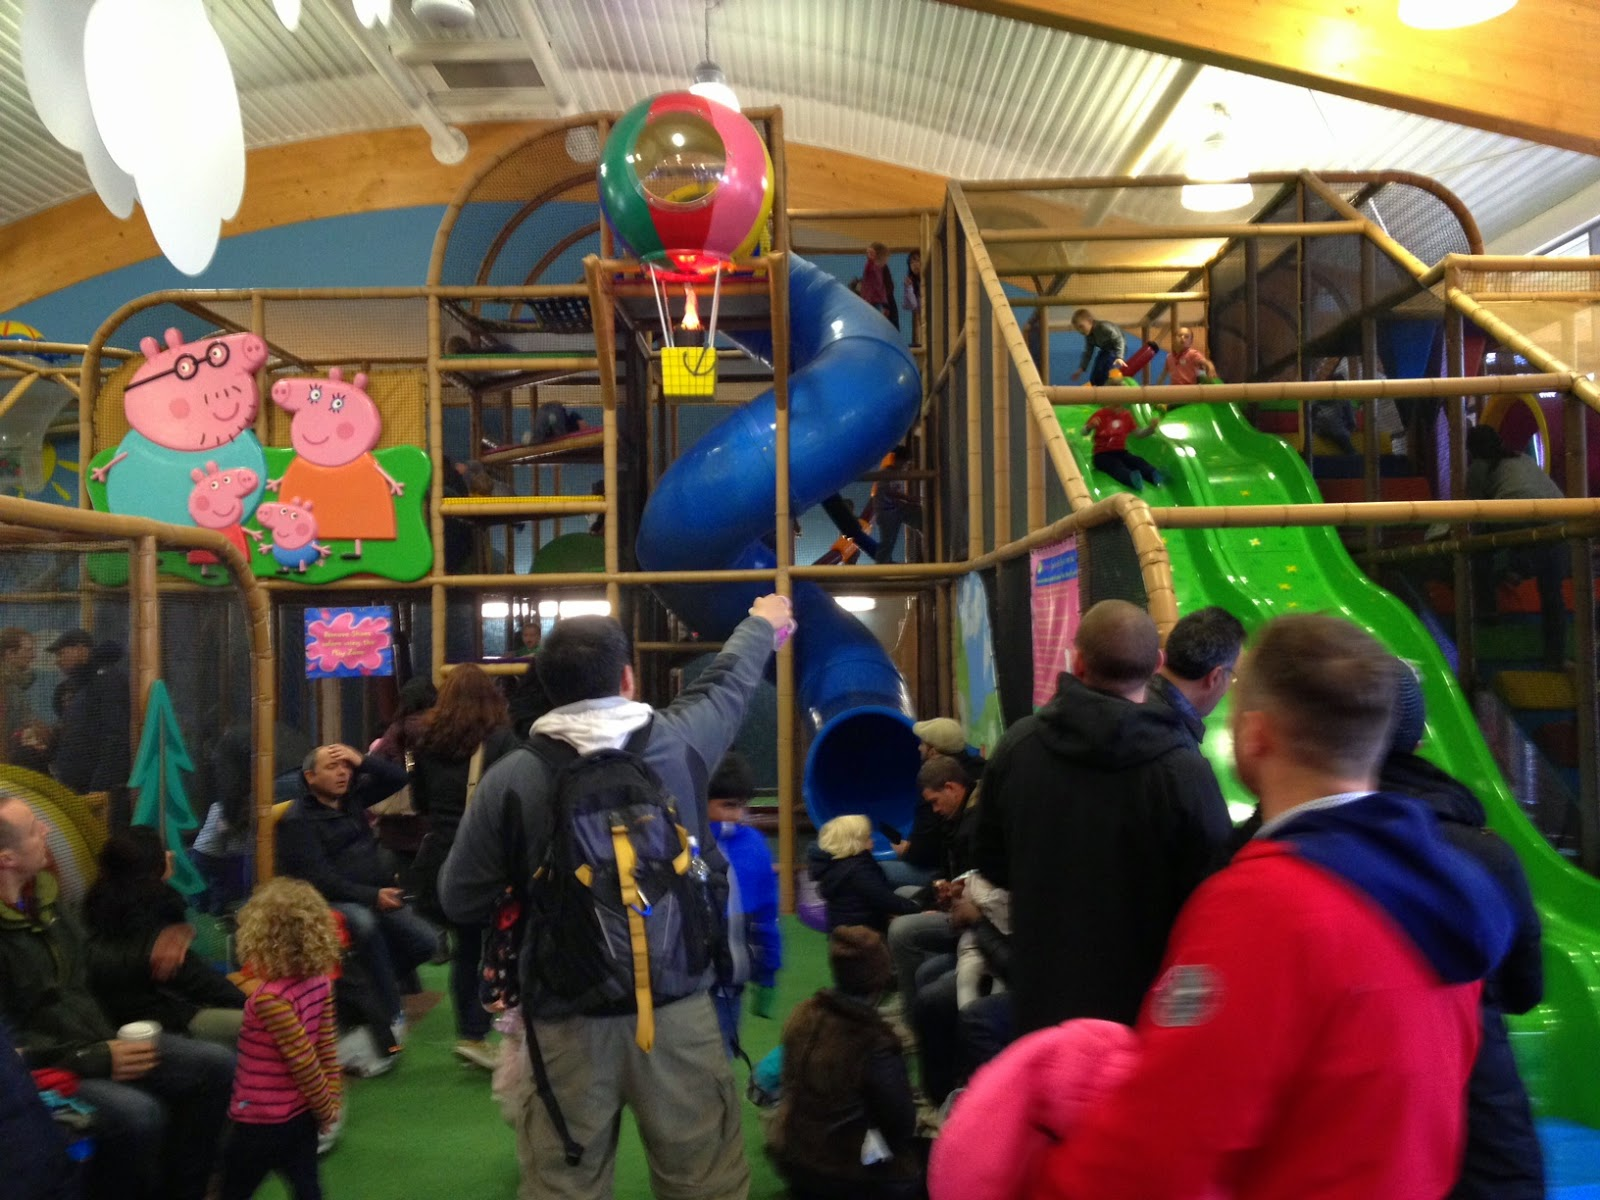 George's Spaceship Playzone at Peppa Pig World